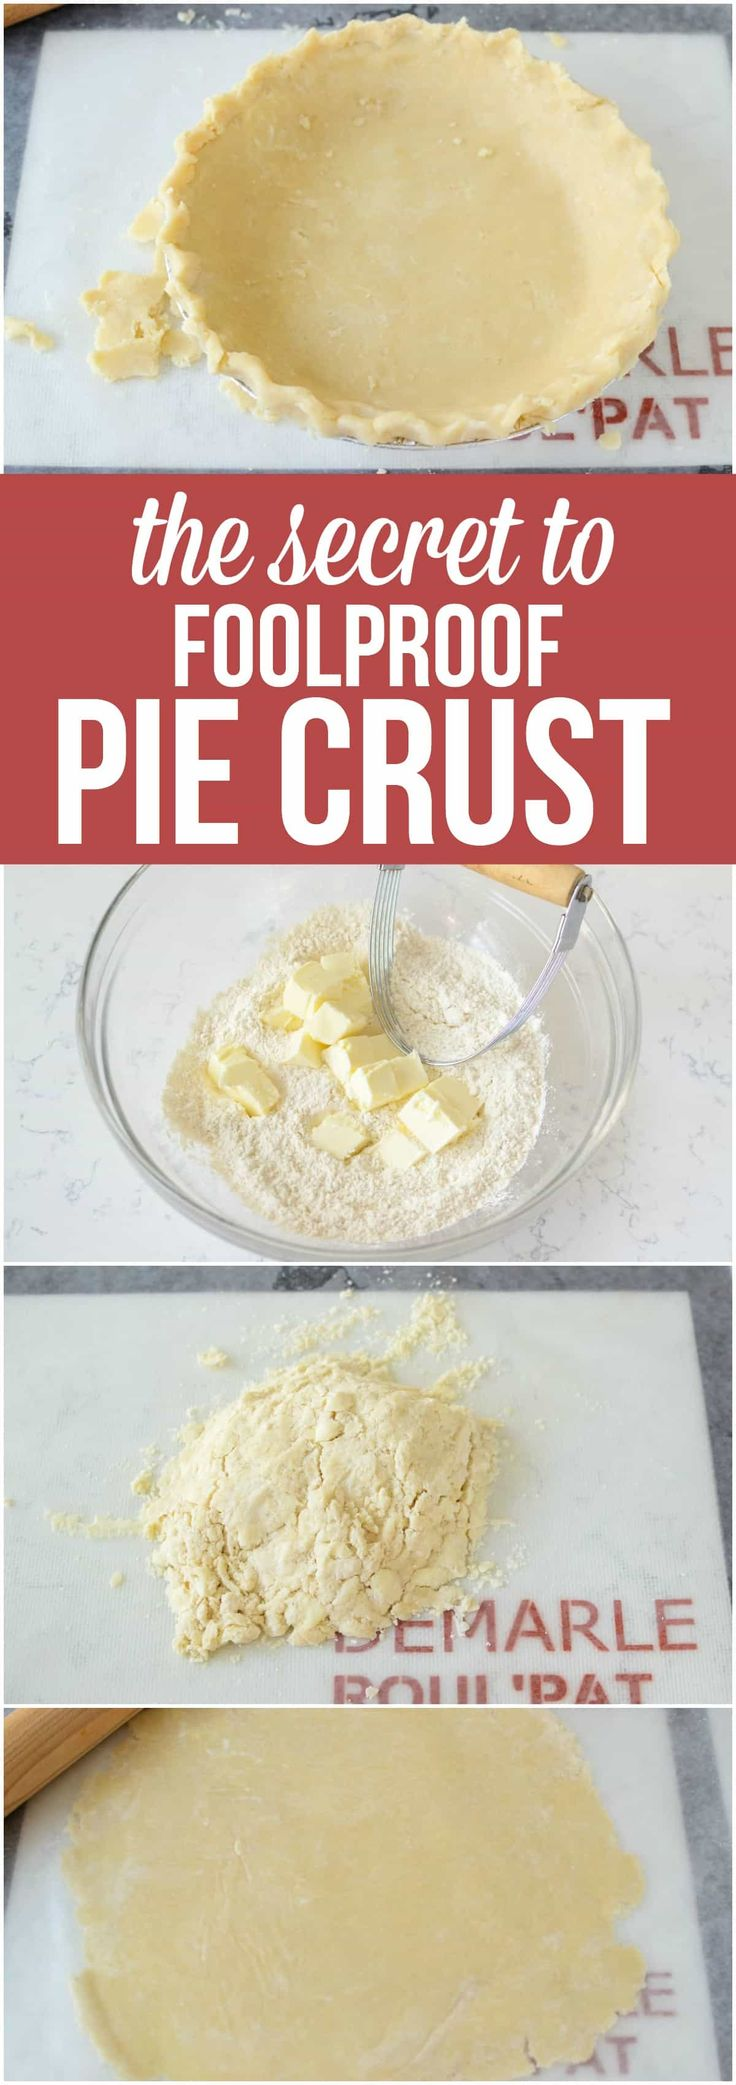 The secret to making the perfect foolproof Pie Crust! Learn what ingredients to use, which method works best, and get recipes for the best pie crusts ever! via @crazyforcrust